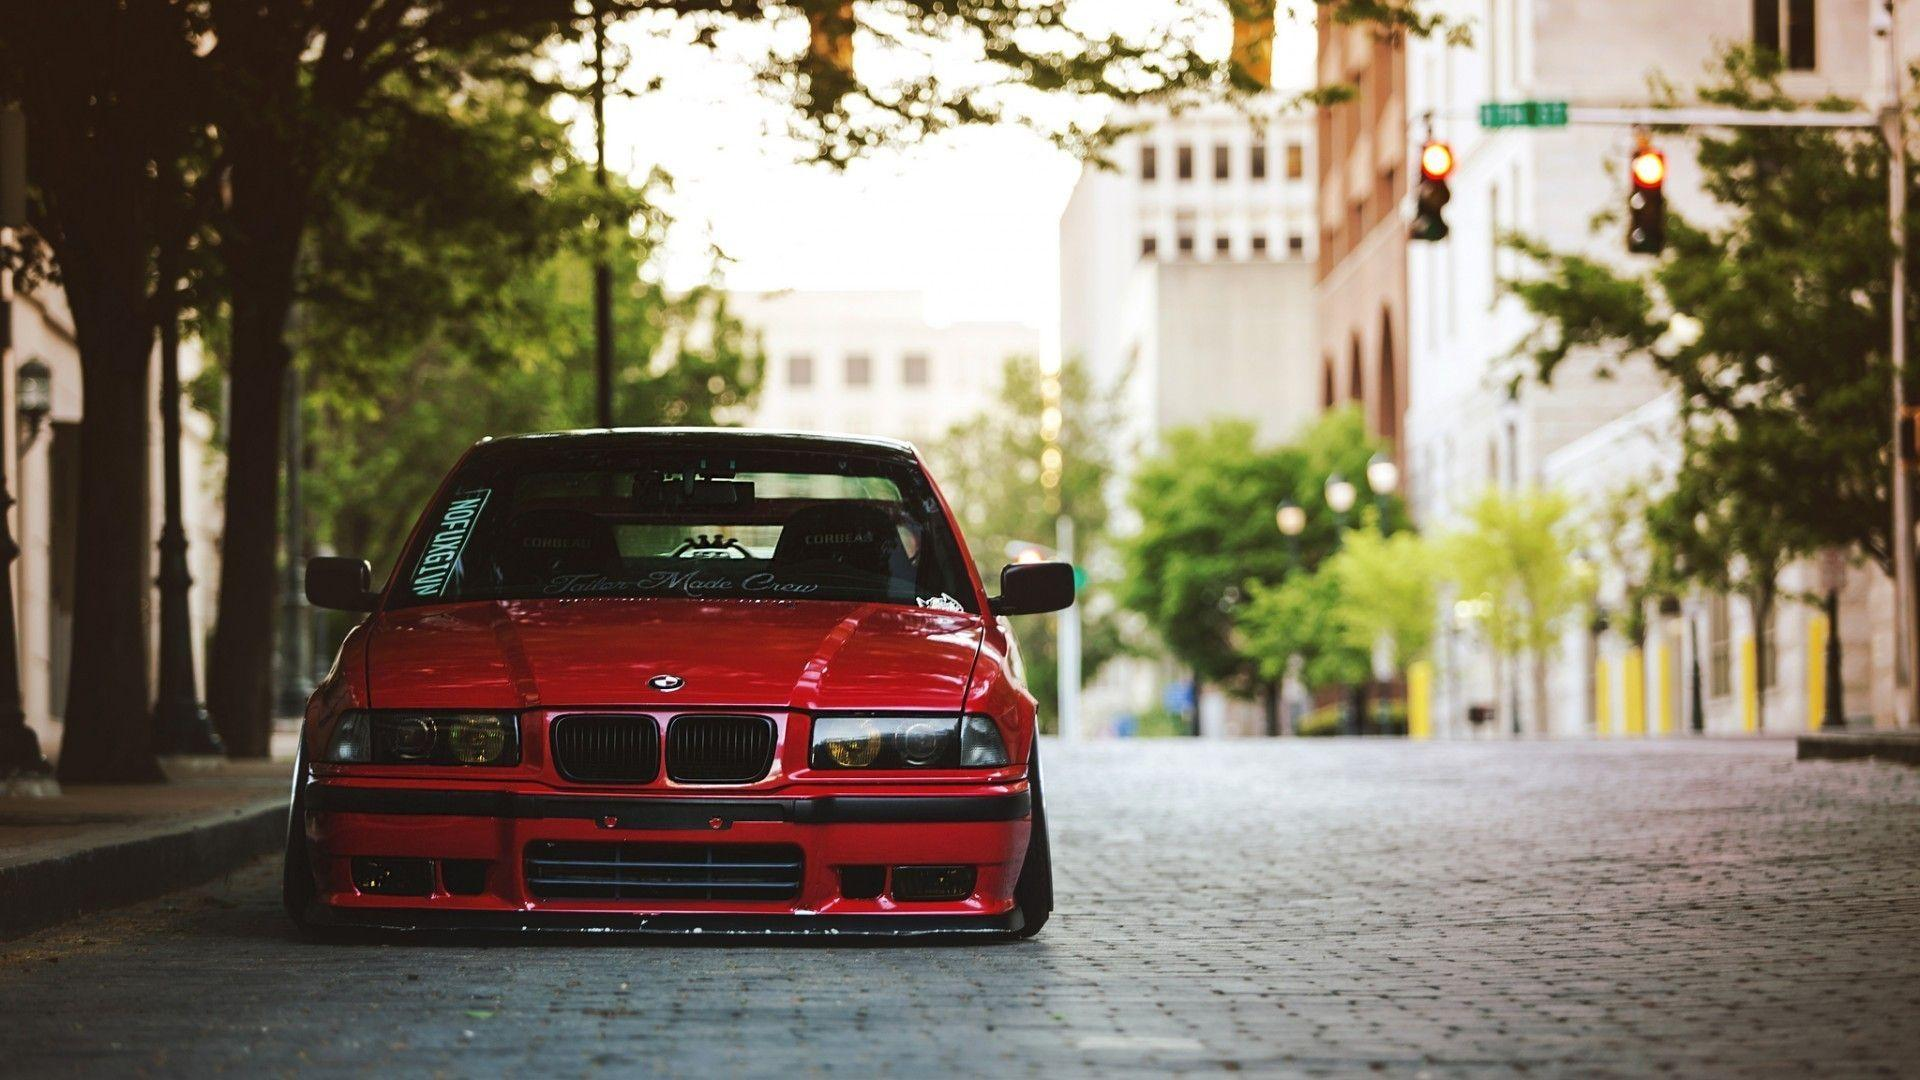 BMW E36 M3 Wallpapers